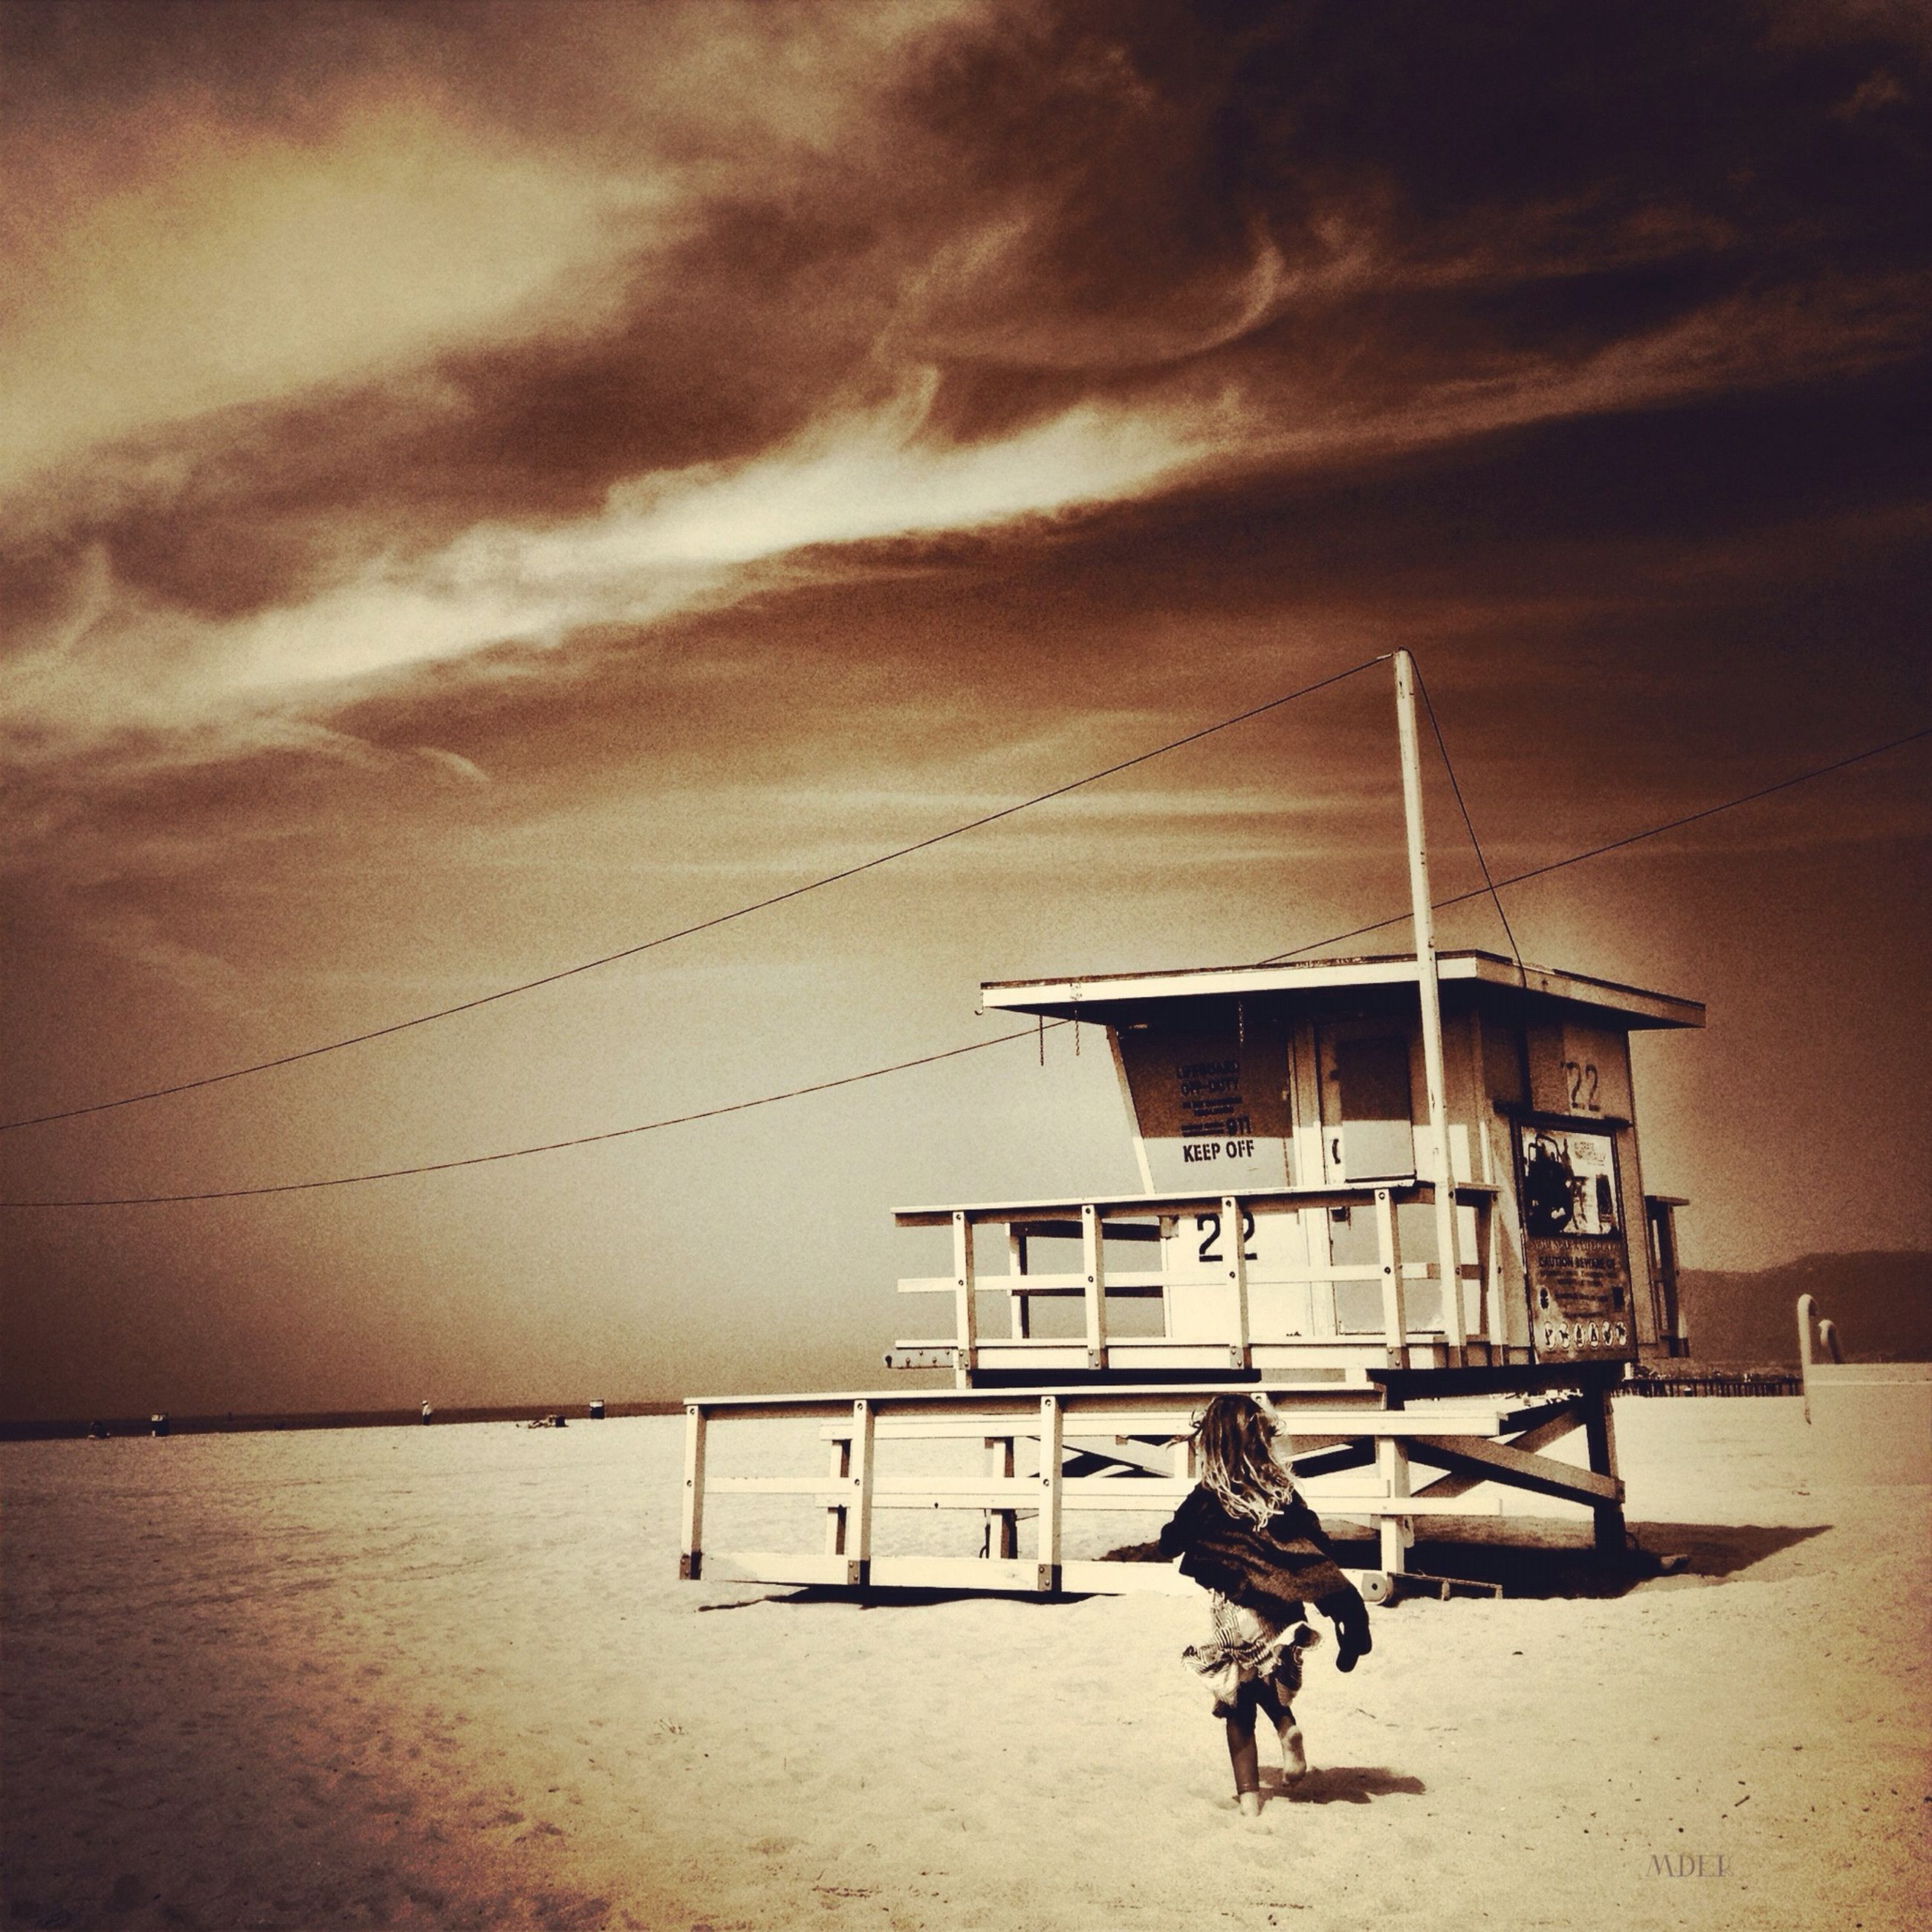 sky, cloud - sky, built structure, cloudy, architecture, building exterior, men, cloud, sunset, weather, full length, outdoors, overcast, nature, house, lifestyles, sand, day